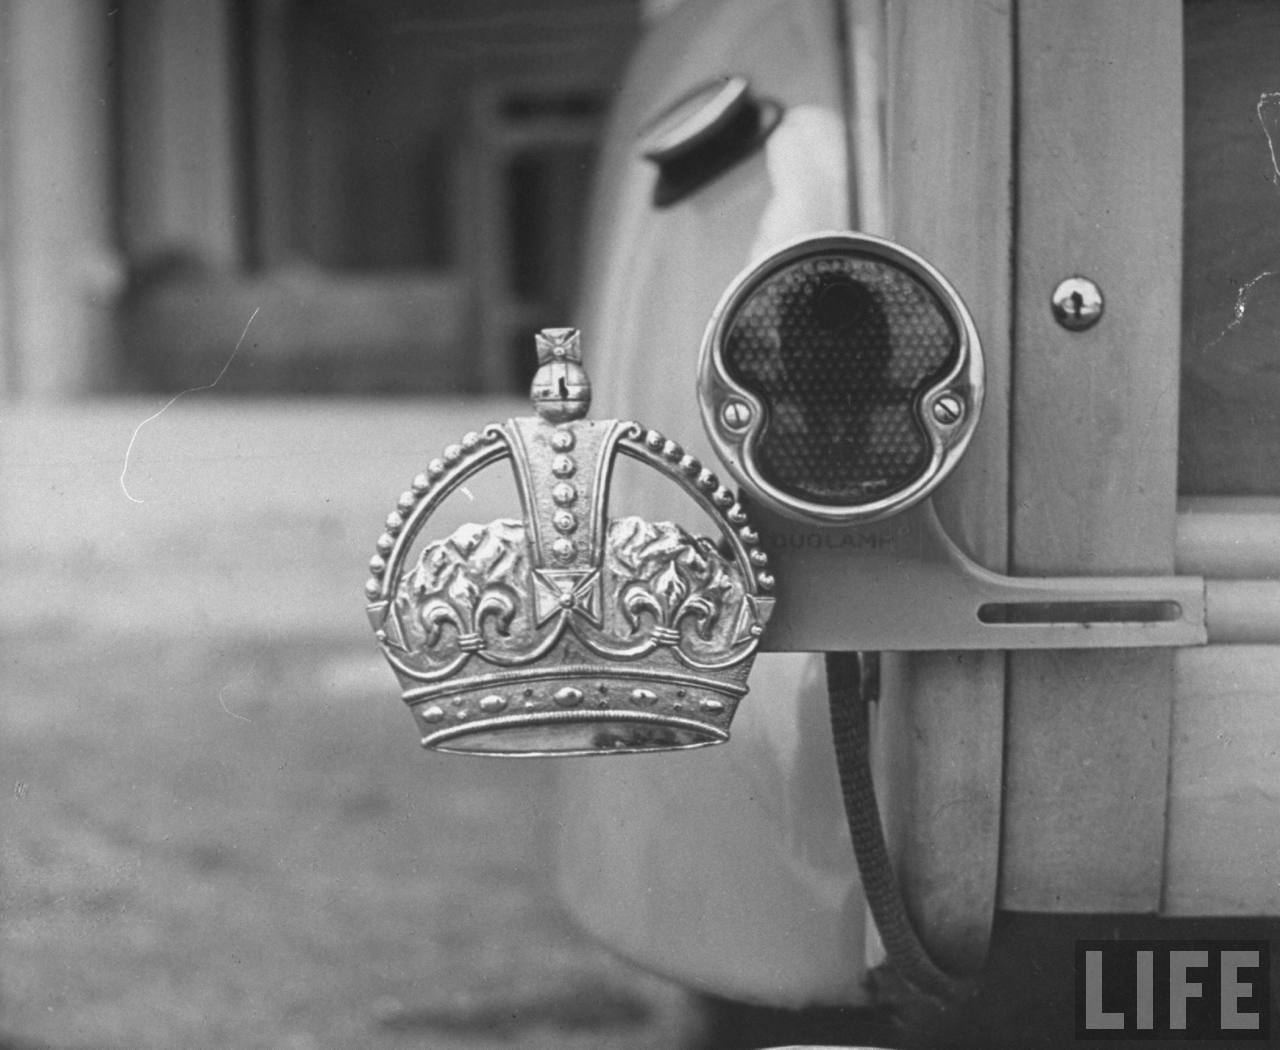 The Duke of Windsor had no license plate, only a royal crown emblem.  circa 1941